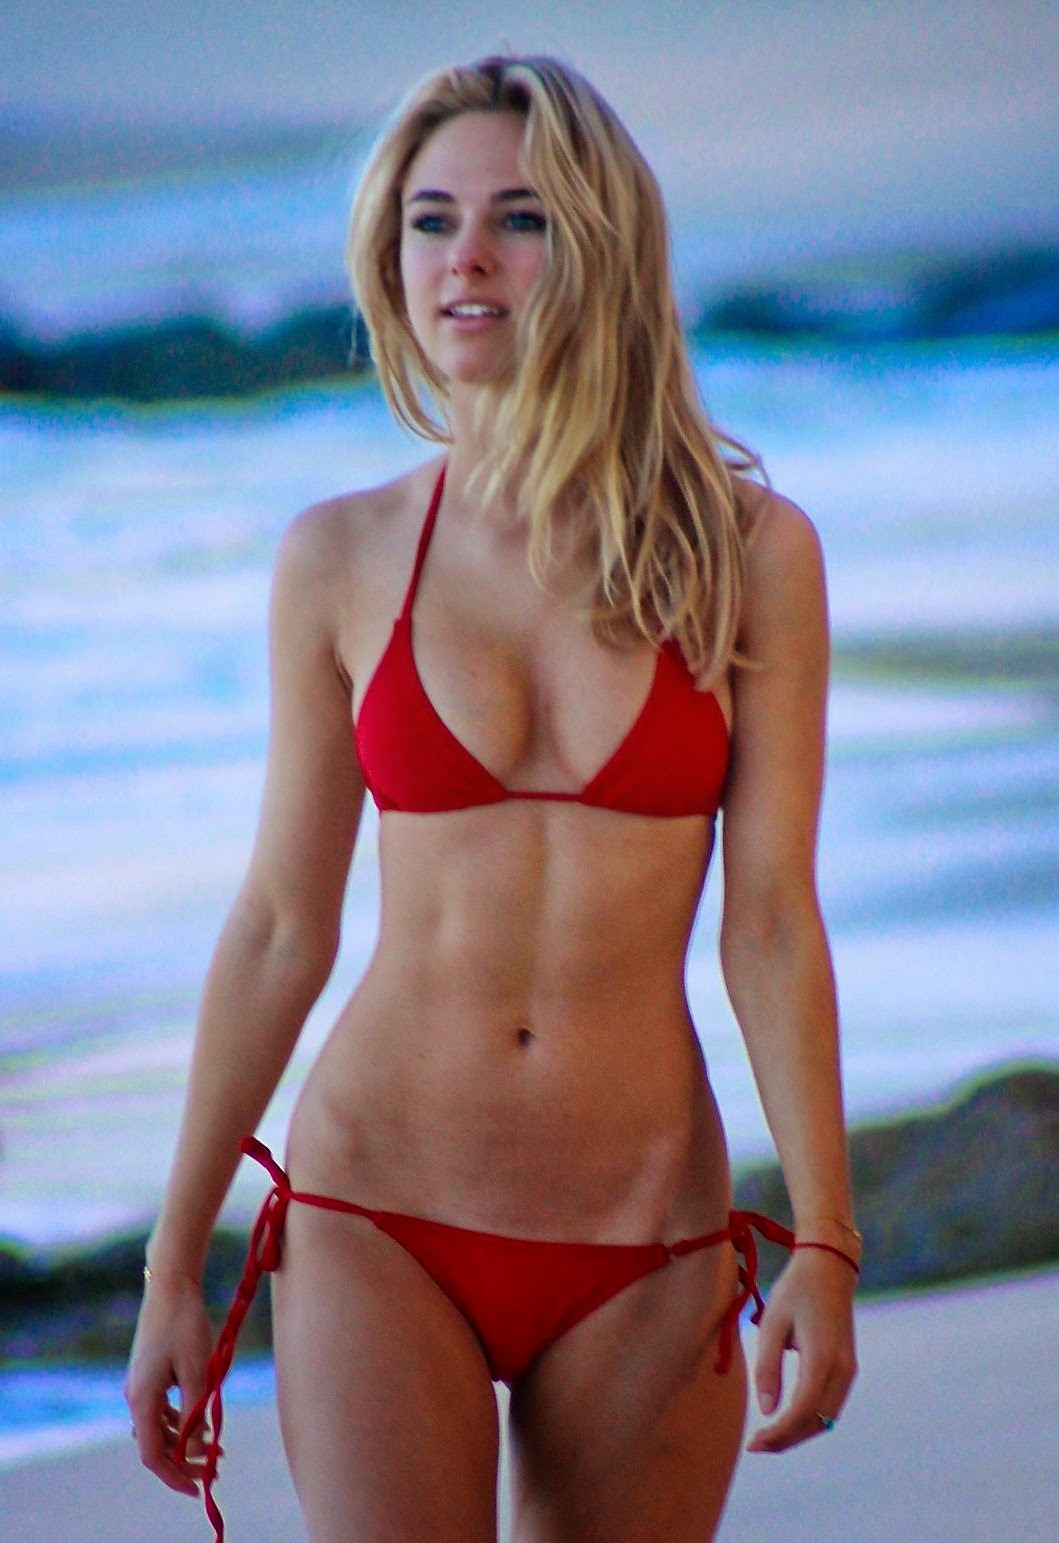 high quality bollywood celebrity pictures kimberley garner showcasing